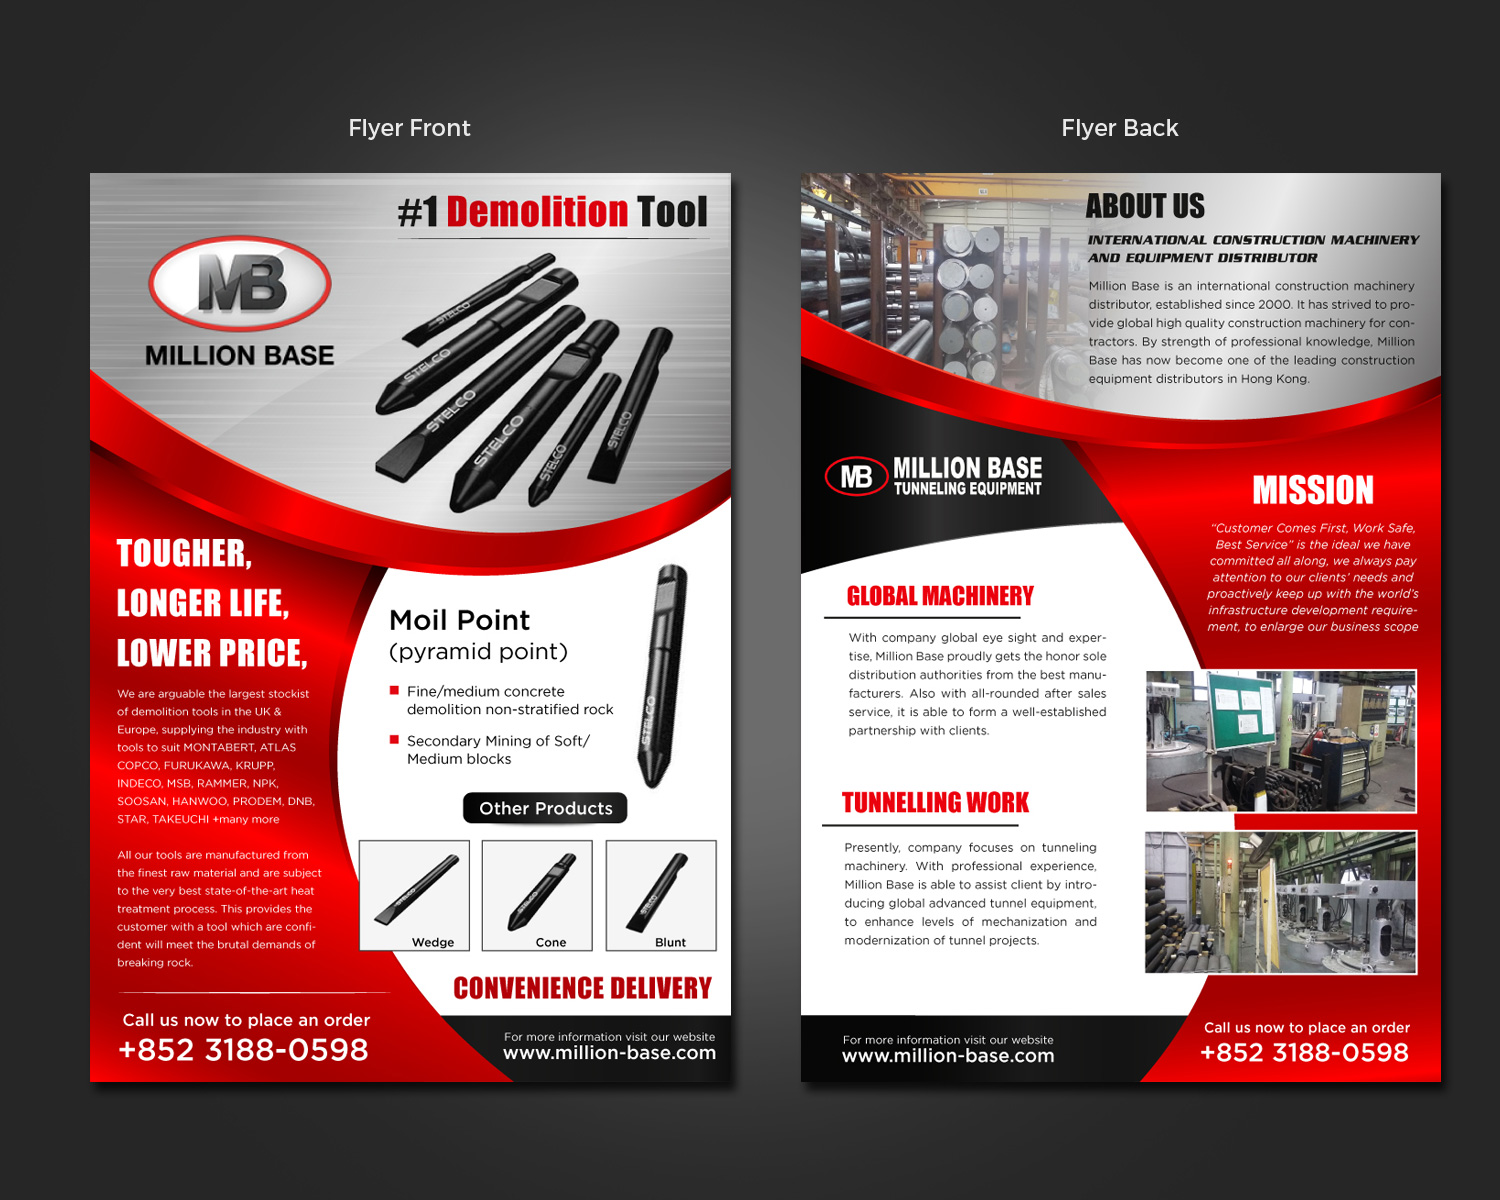 serious professional flyer design for joseph wong by flyer design by pivotaldesign biz for construction machinery company needs two pages flyers to